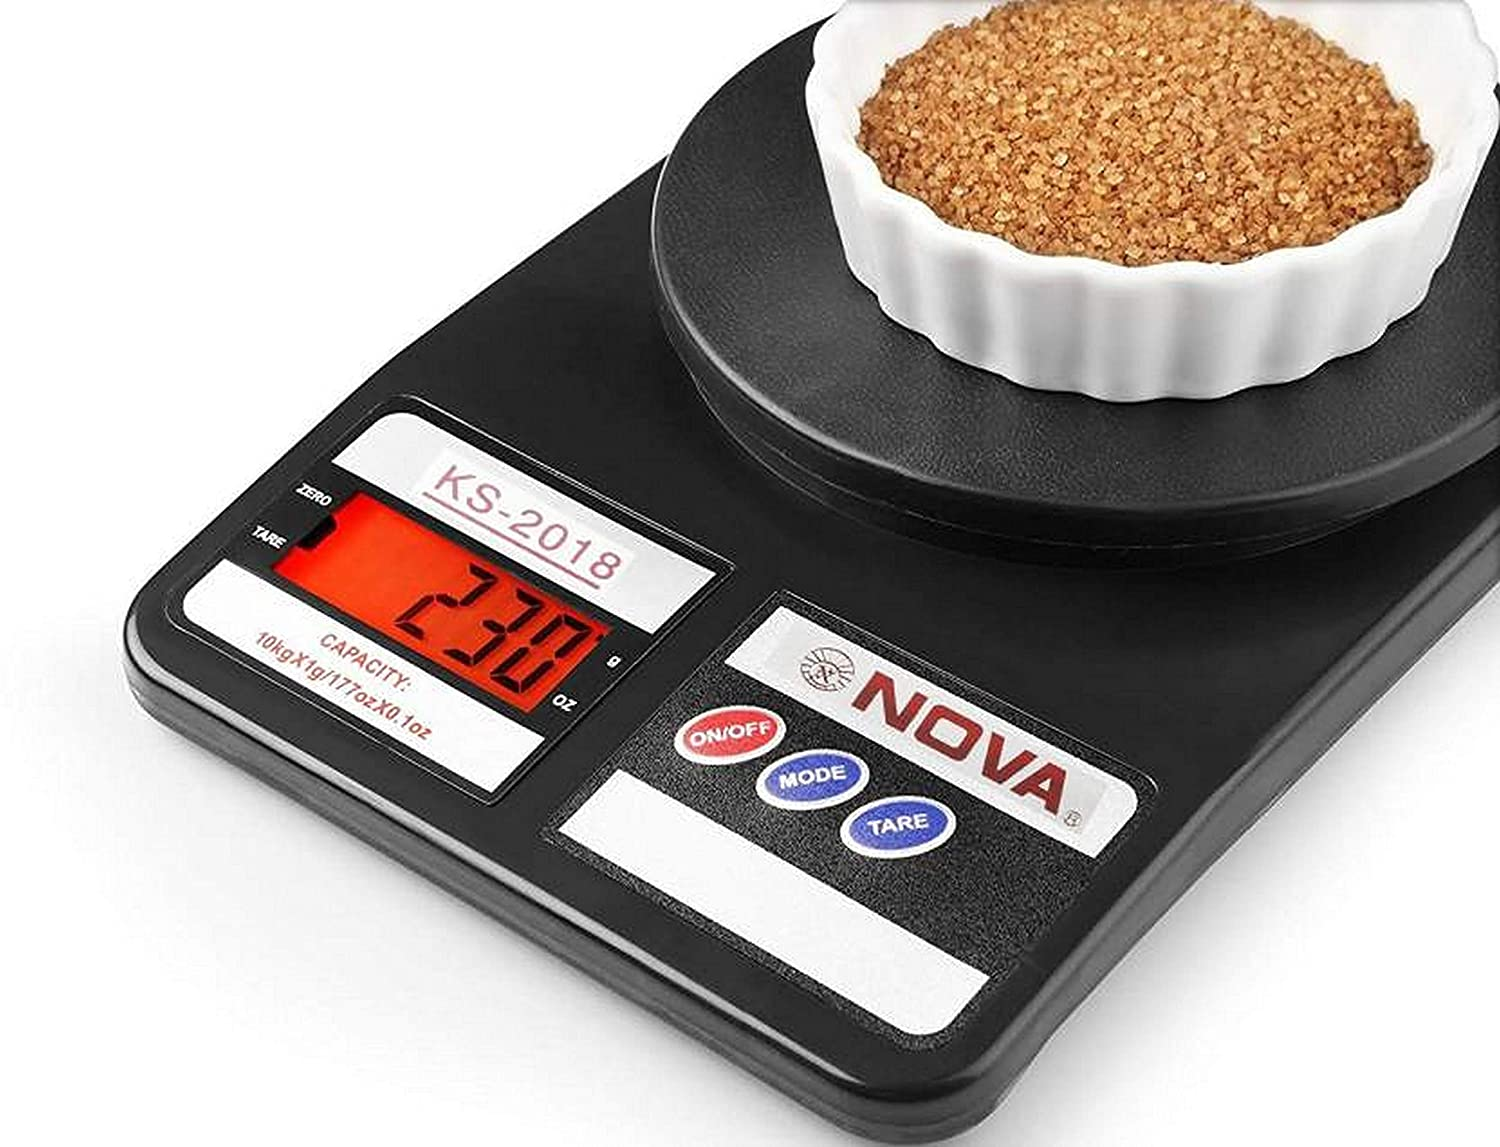 Buy NOVA KS 2018 Plastic Electronic Digital Kitchen Weighing Scale, 10 Kg  (Black) Online at Low Prices in India - Amazon.in